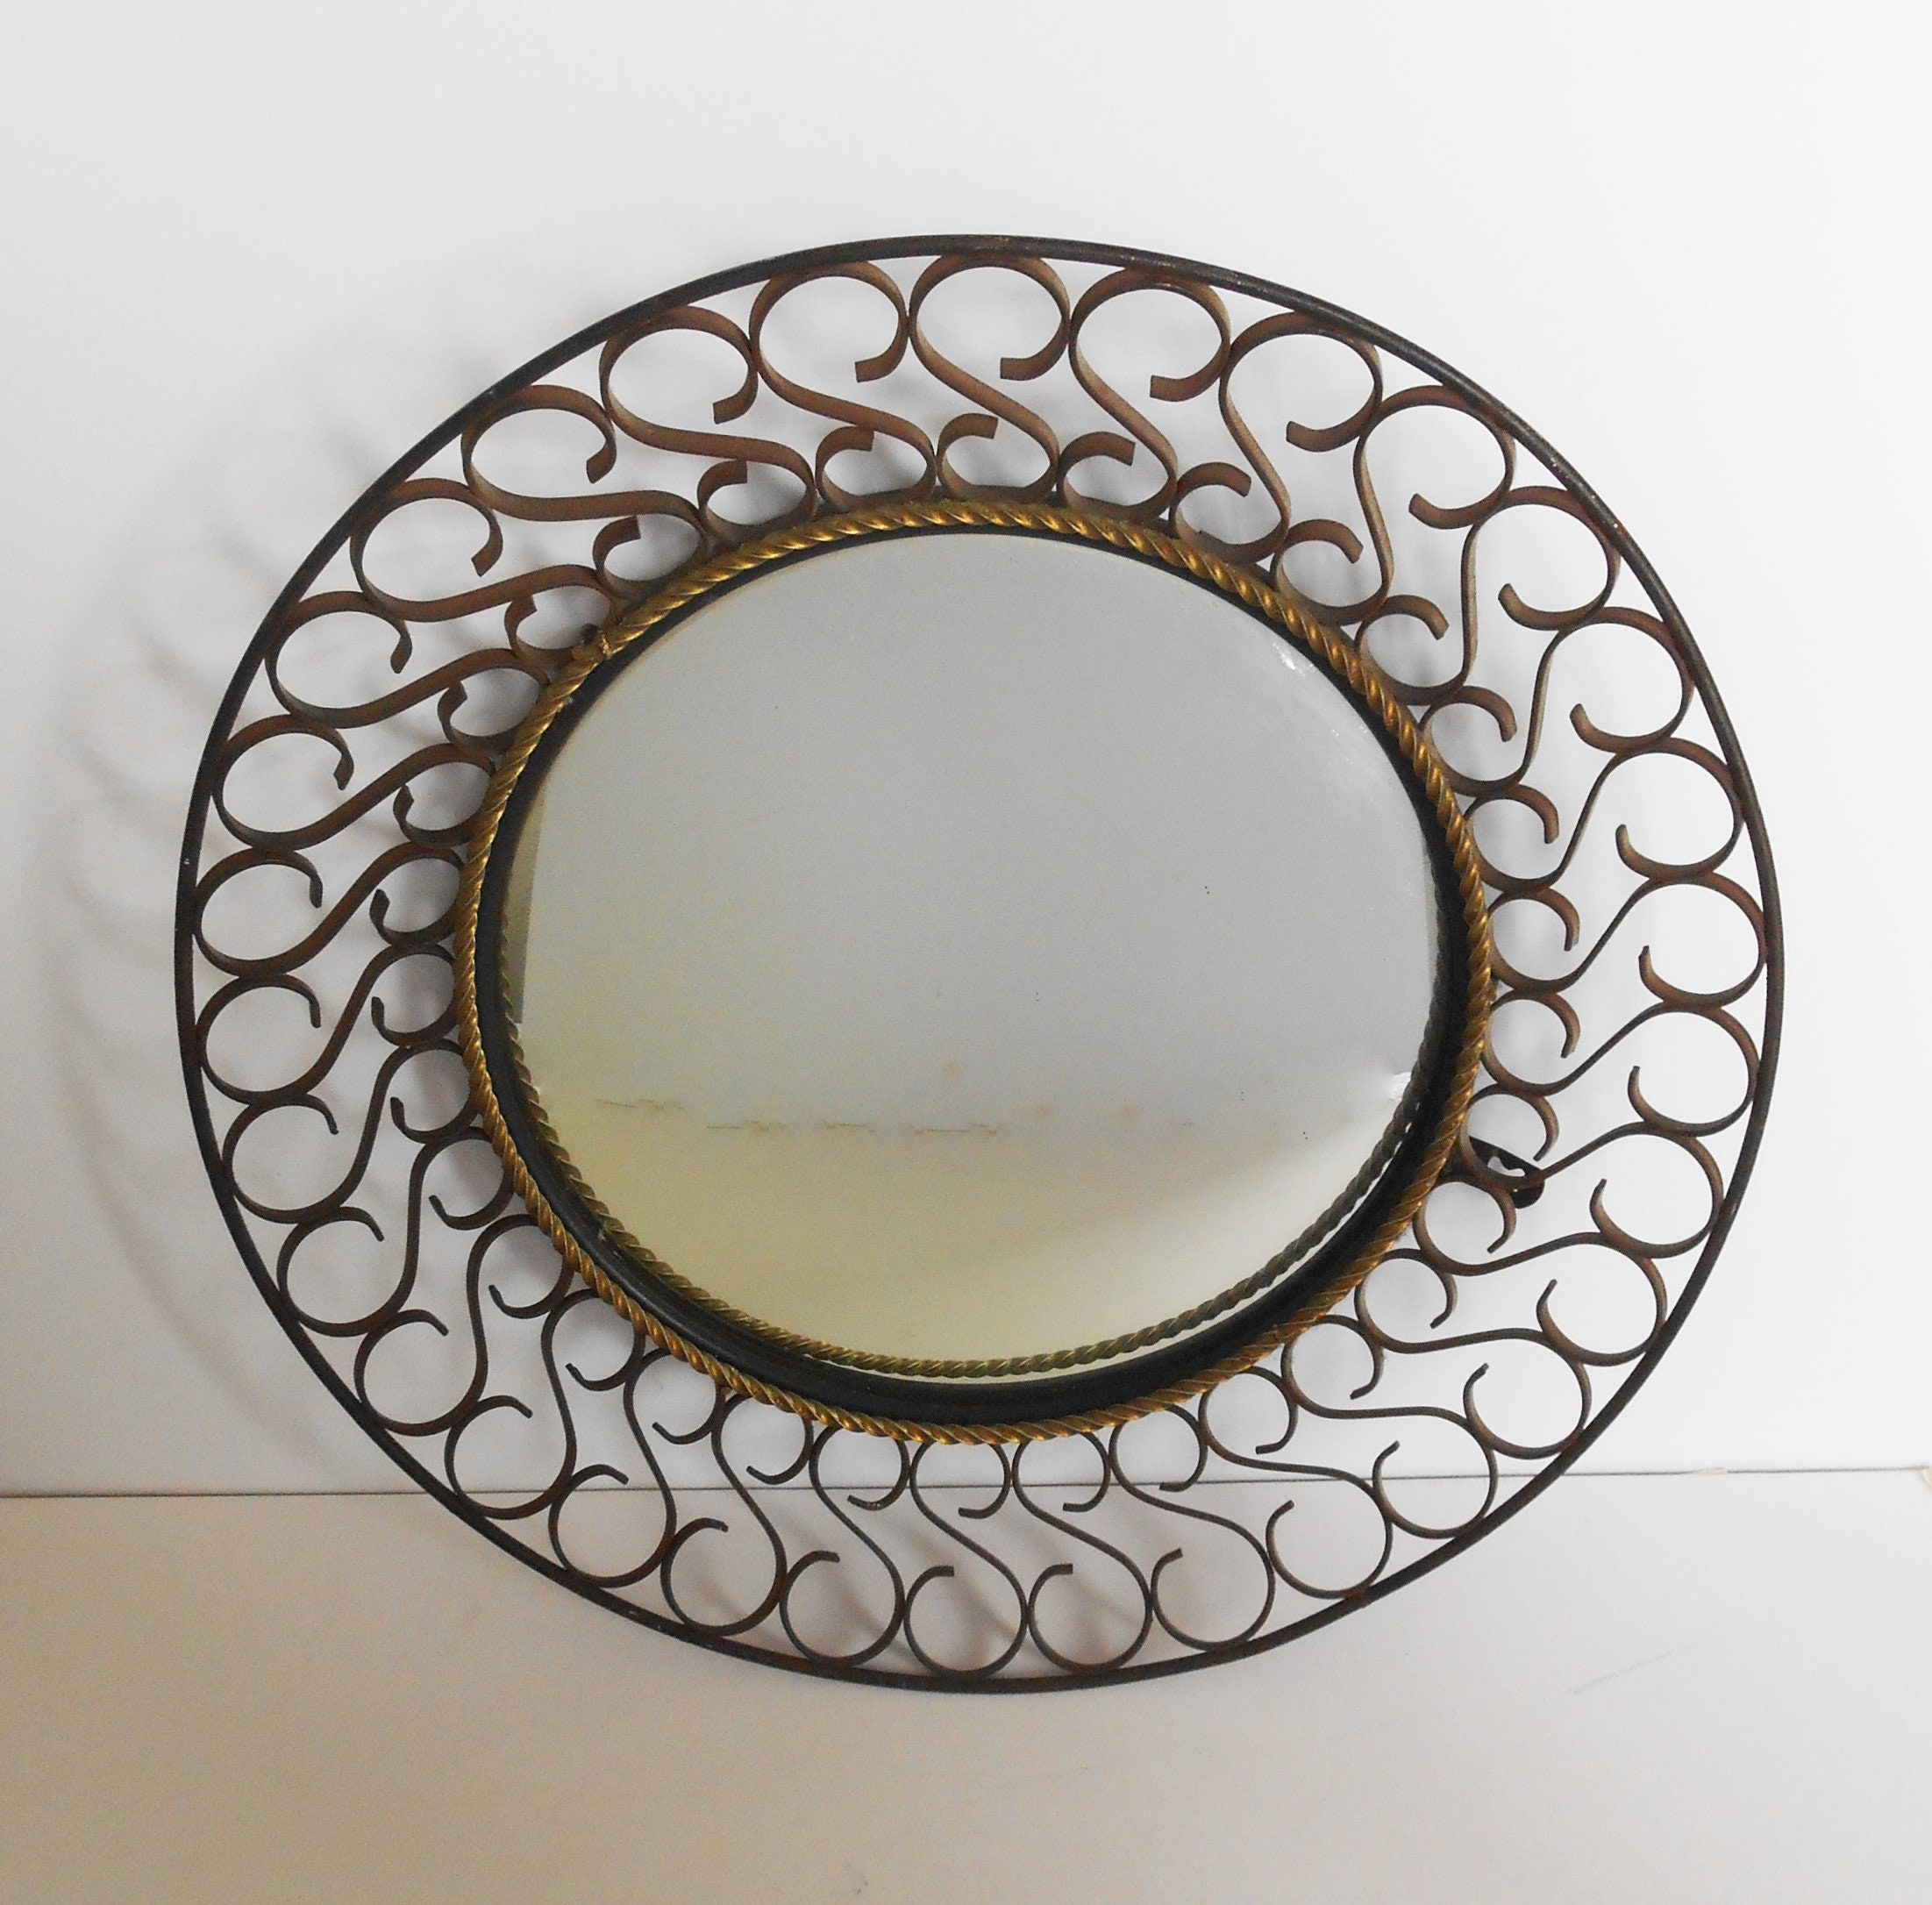 Large Porthole Mirror Concave Wrought Iron Scroll Metal Frame Etsy